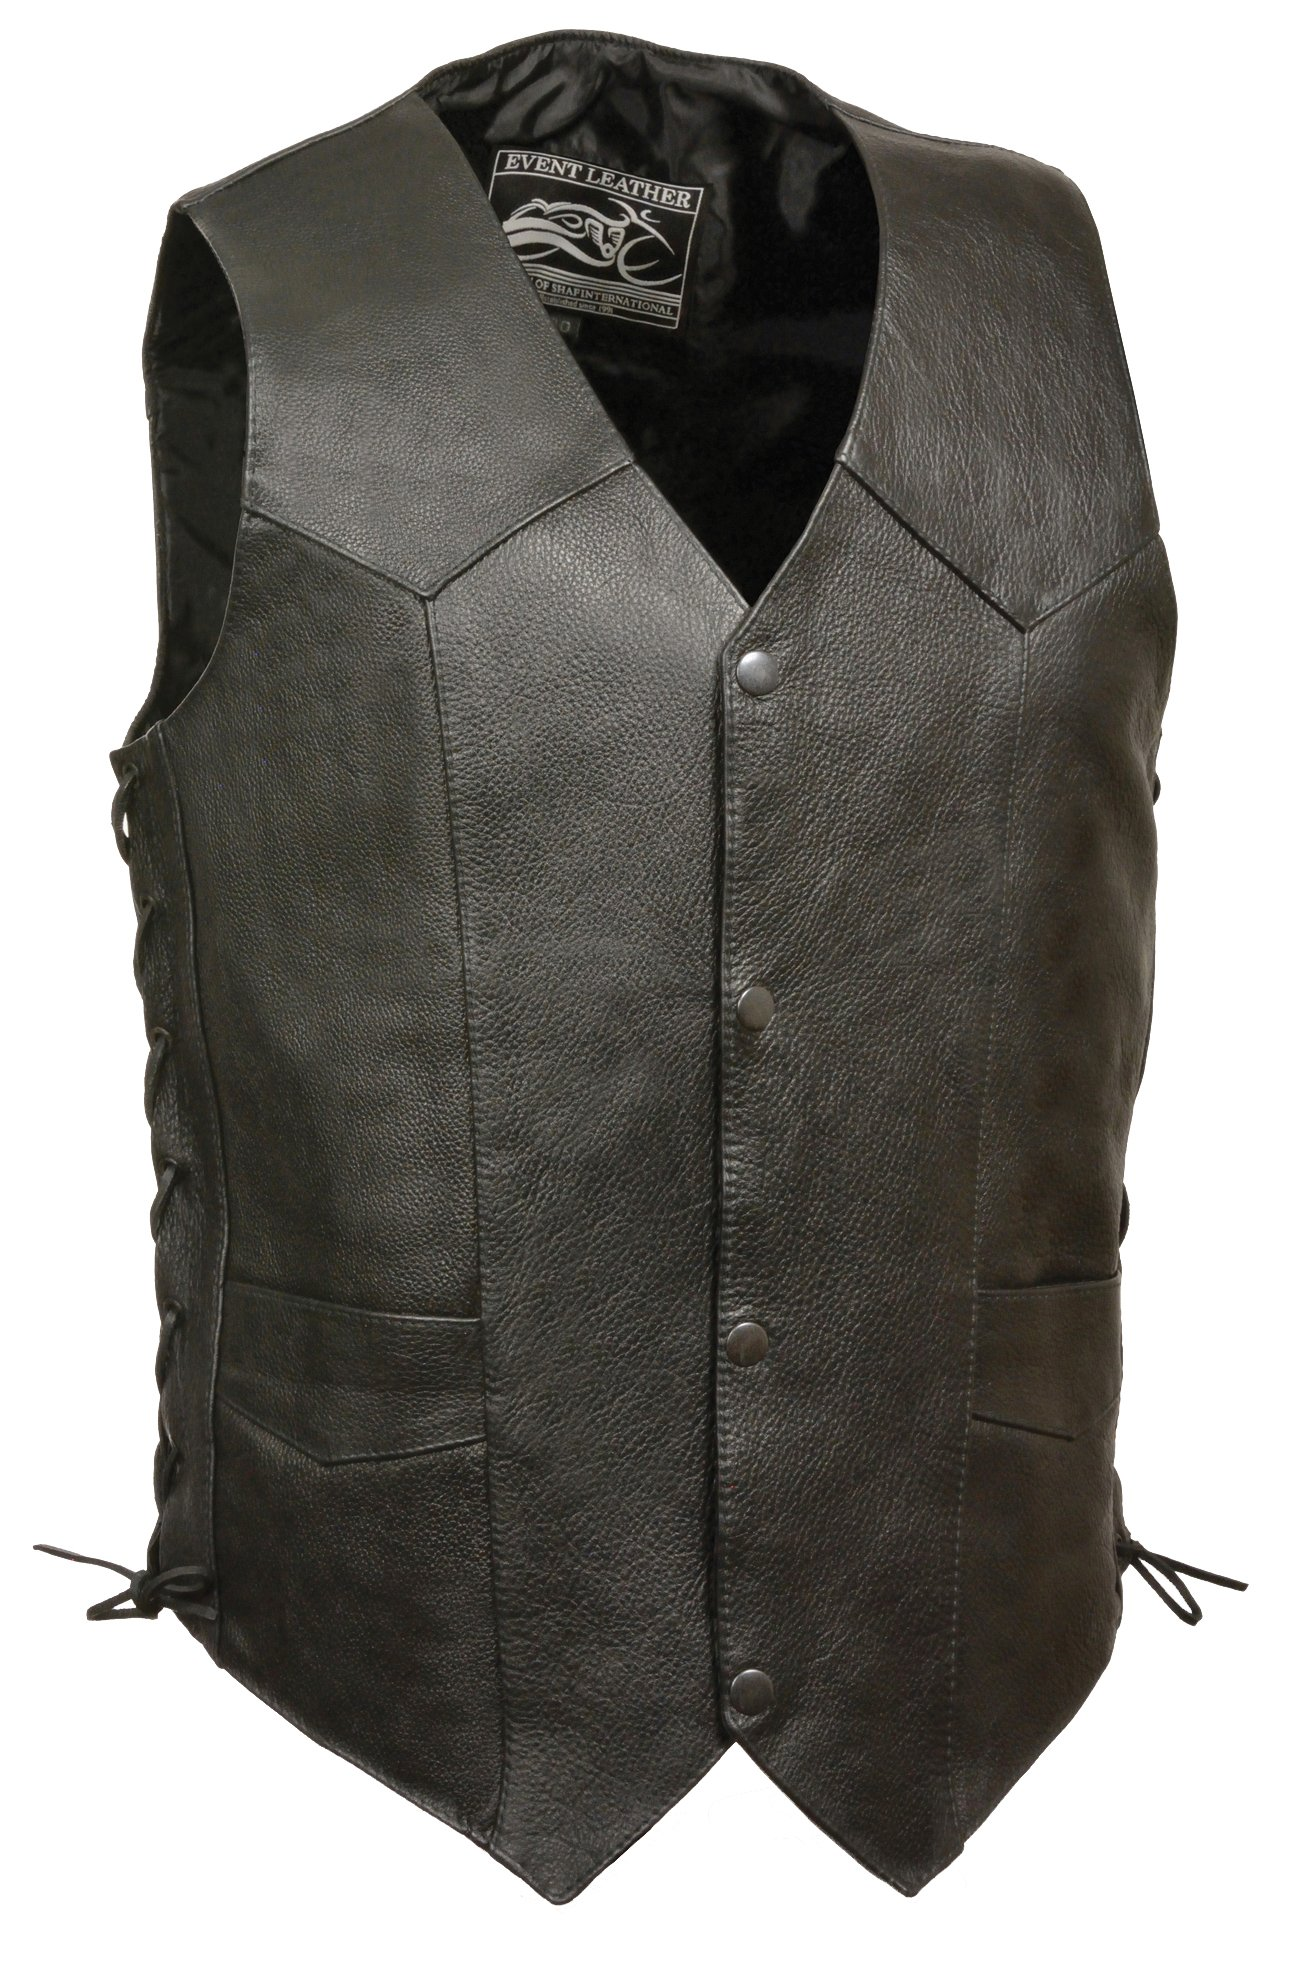 Event Biker Leather Men's Promo Side Lace Leather Vest (Black, X-Large) by Event Biker Leather